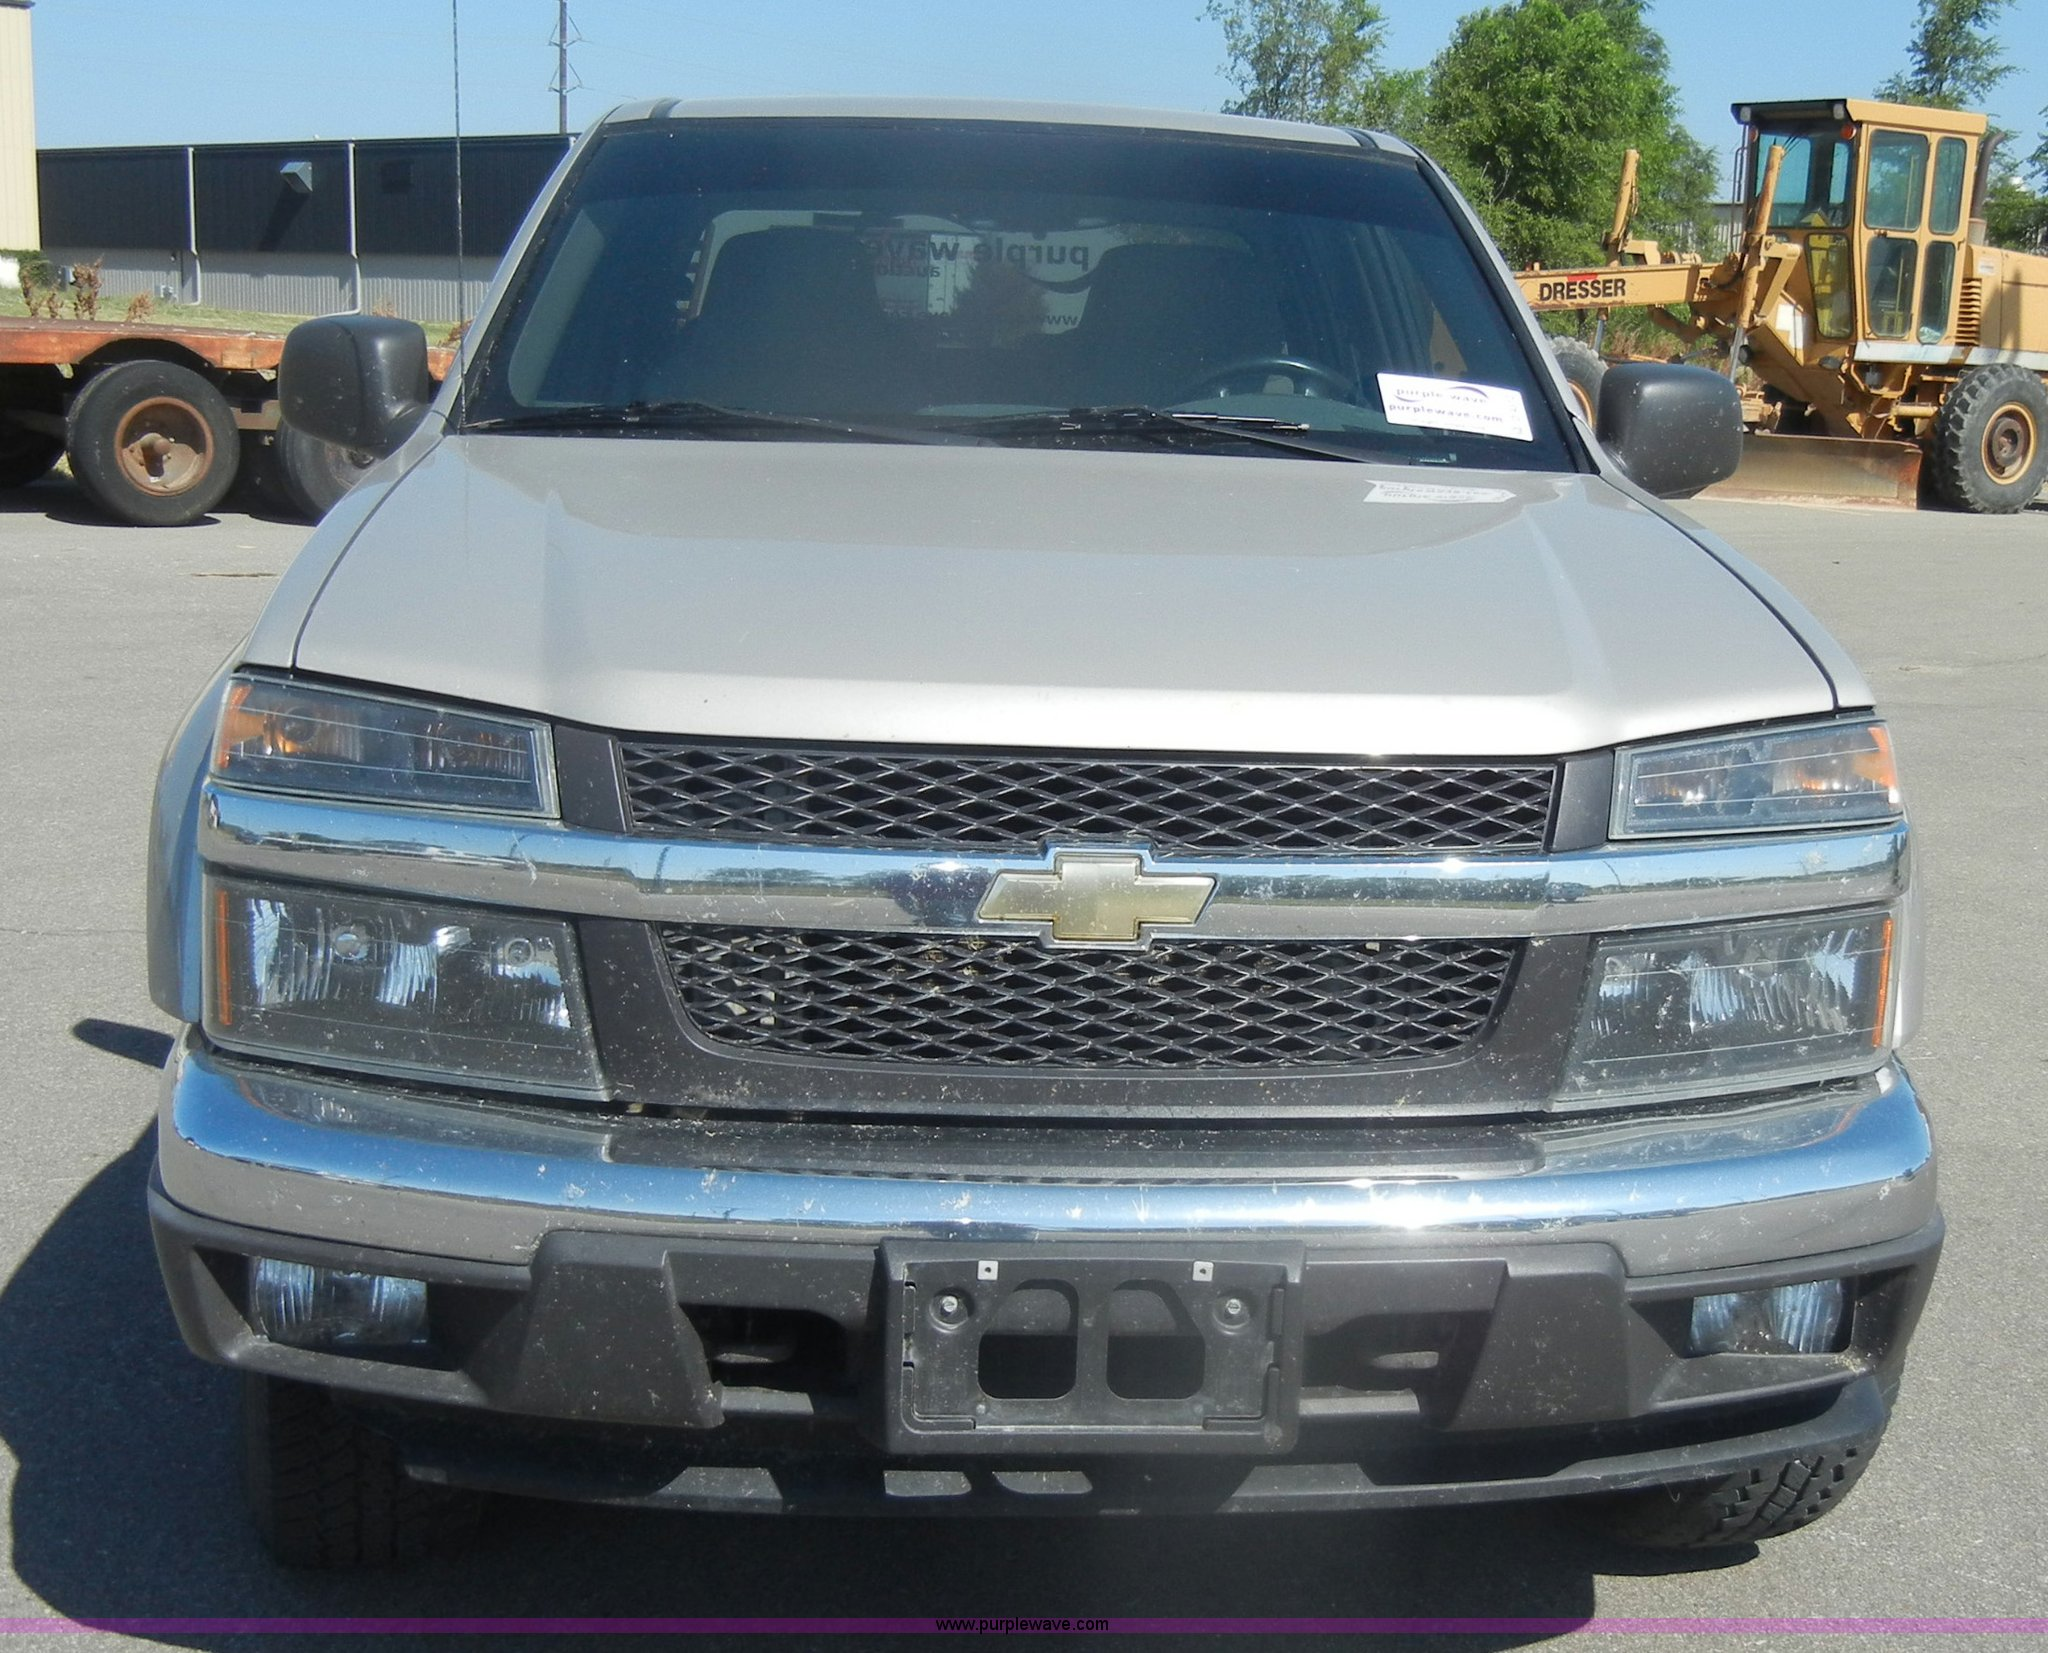 2005 Chevrolet Colorado Ls Z71 Pickup Truck Item D4312 S Trailer Wiring Full Size In New Window